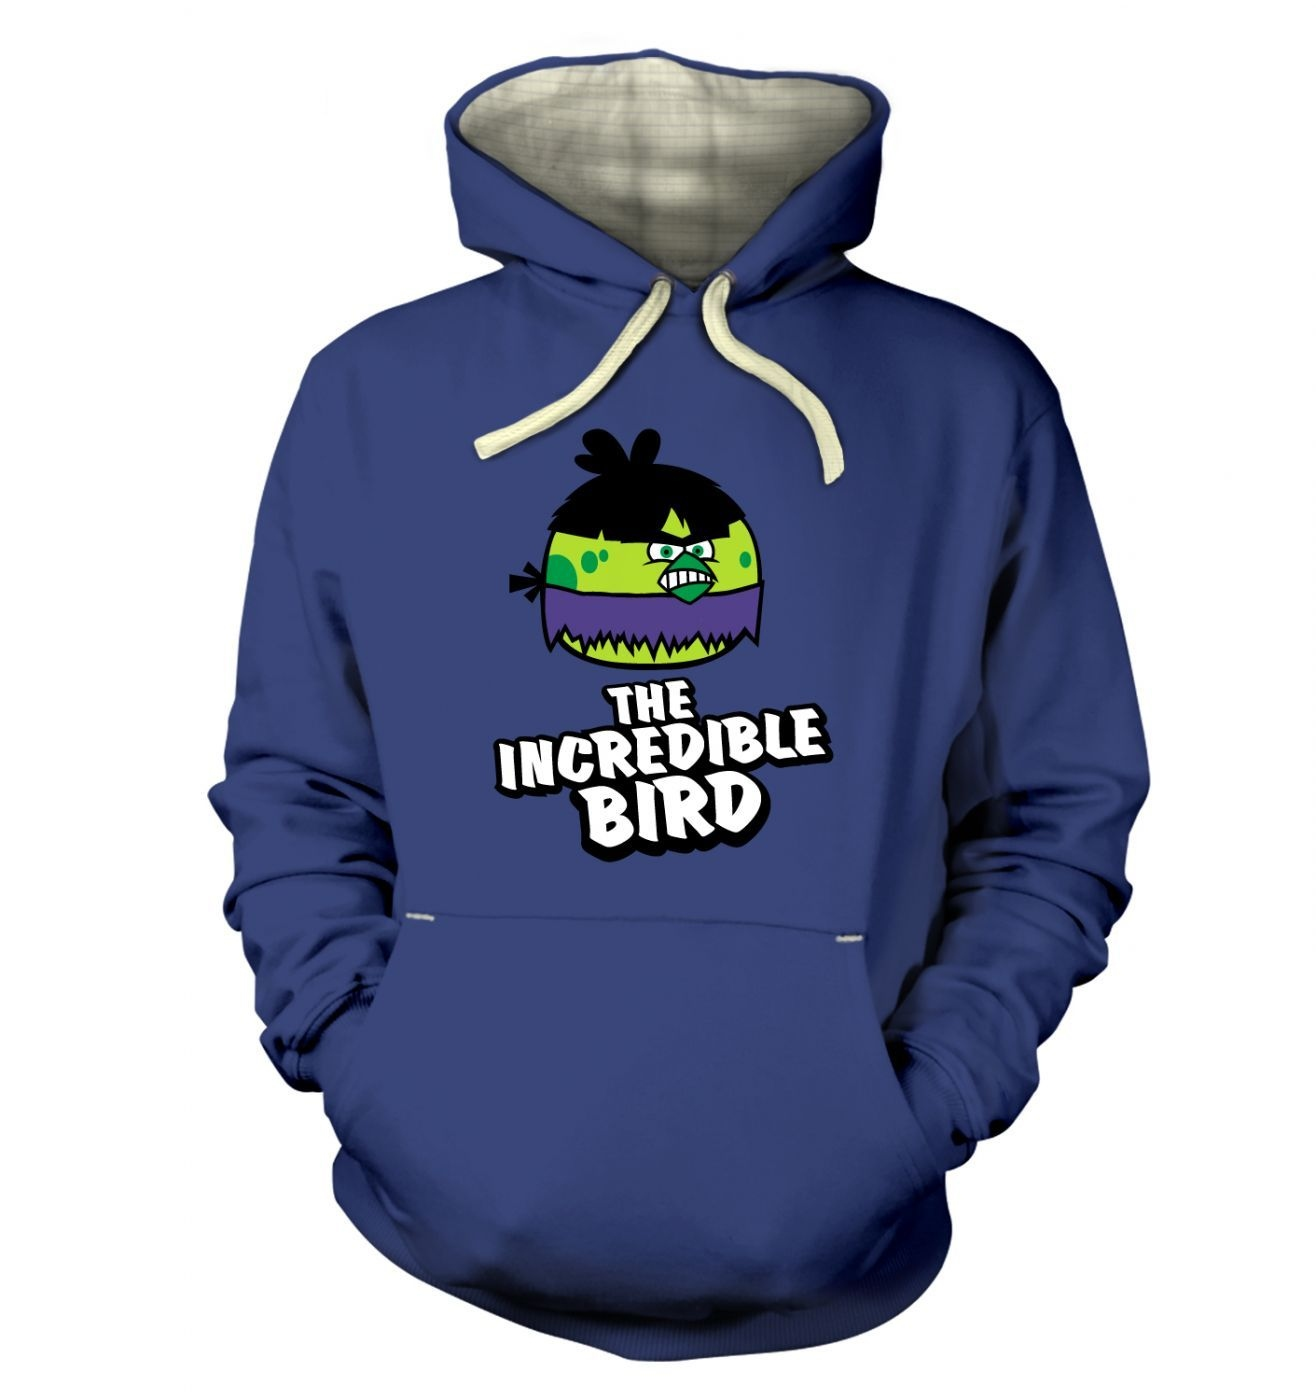 Incredible Bird Premium Hoodie Inspired By Avengers, Angy Birds And The Hulk